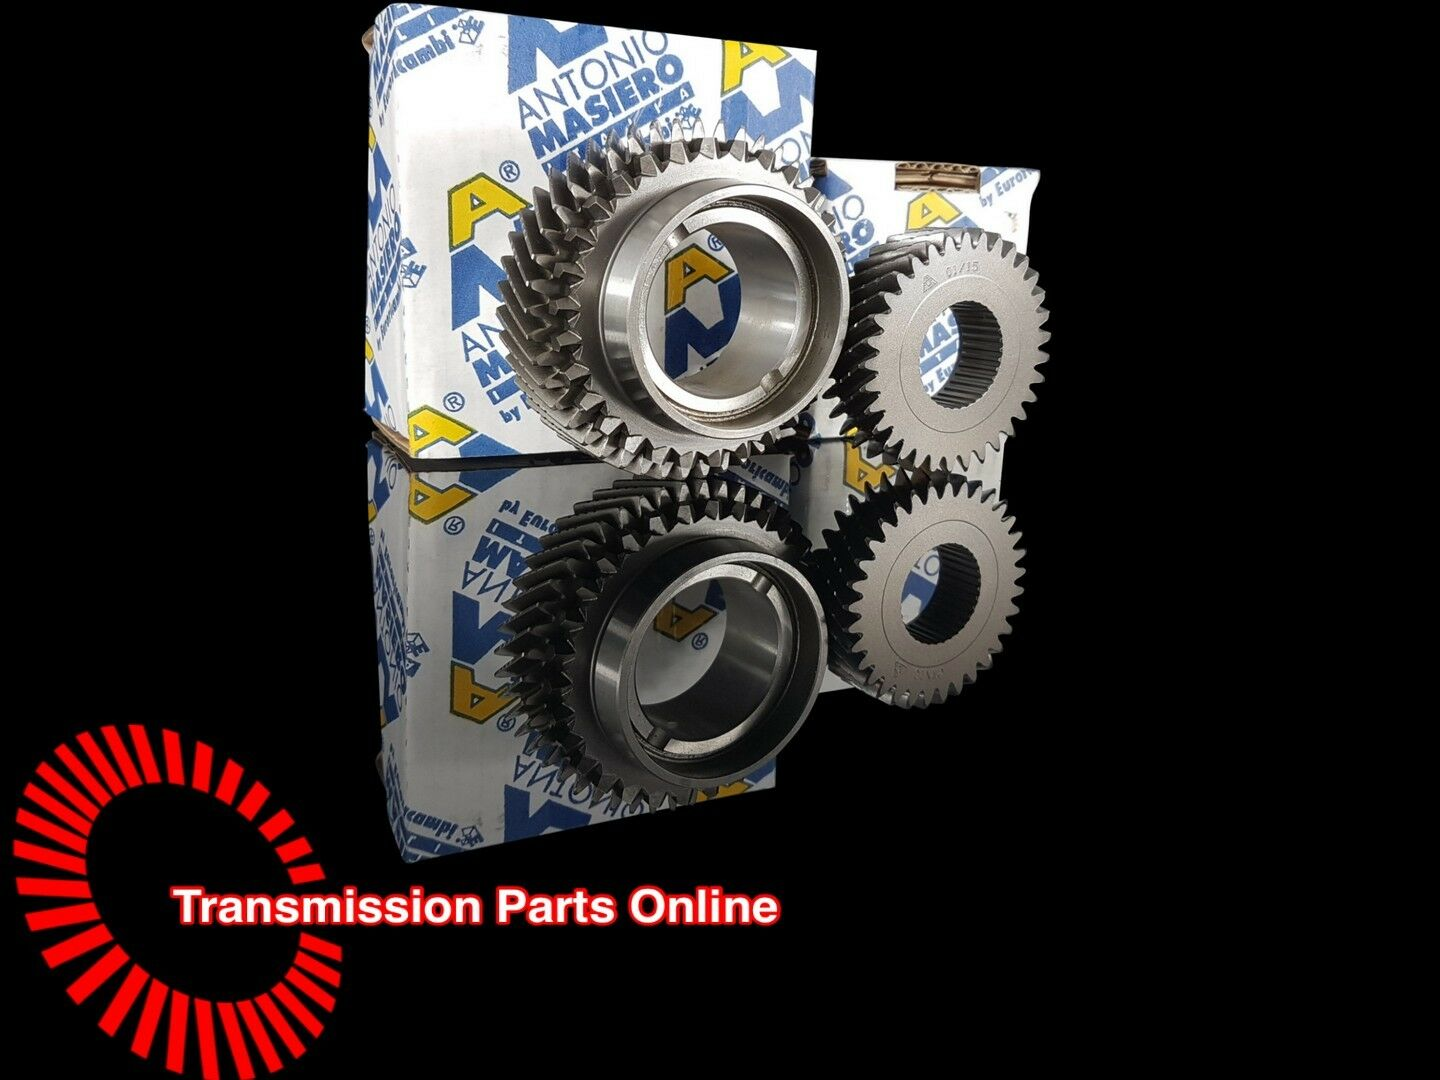 Details about VW T4 Transporter 1 9Tdi 2 5Tdi 02B Gearbox 5th Gear Pair  0 72 Ratio 33 / 46